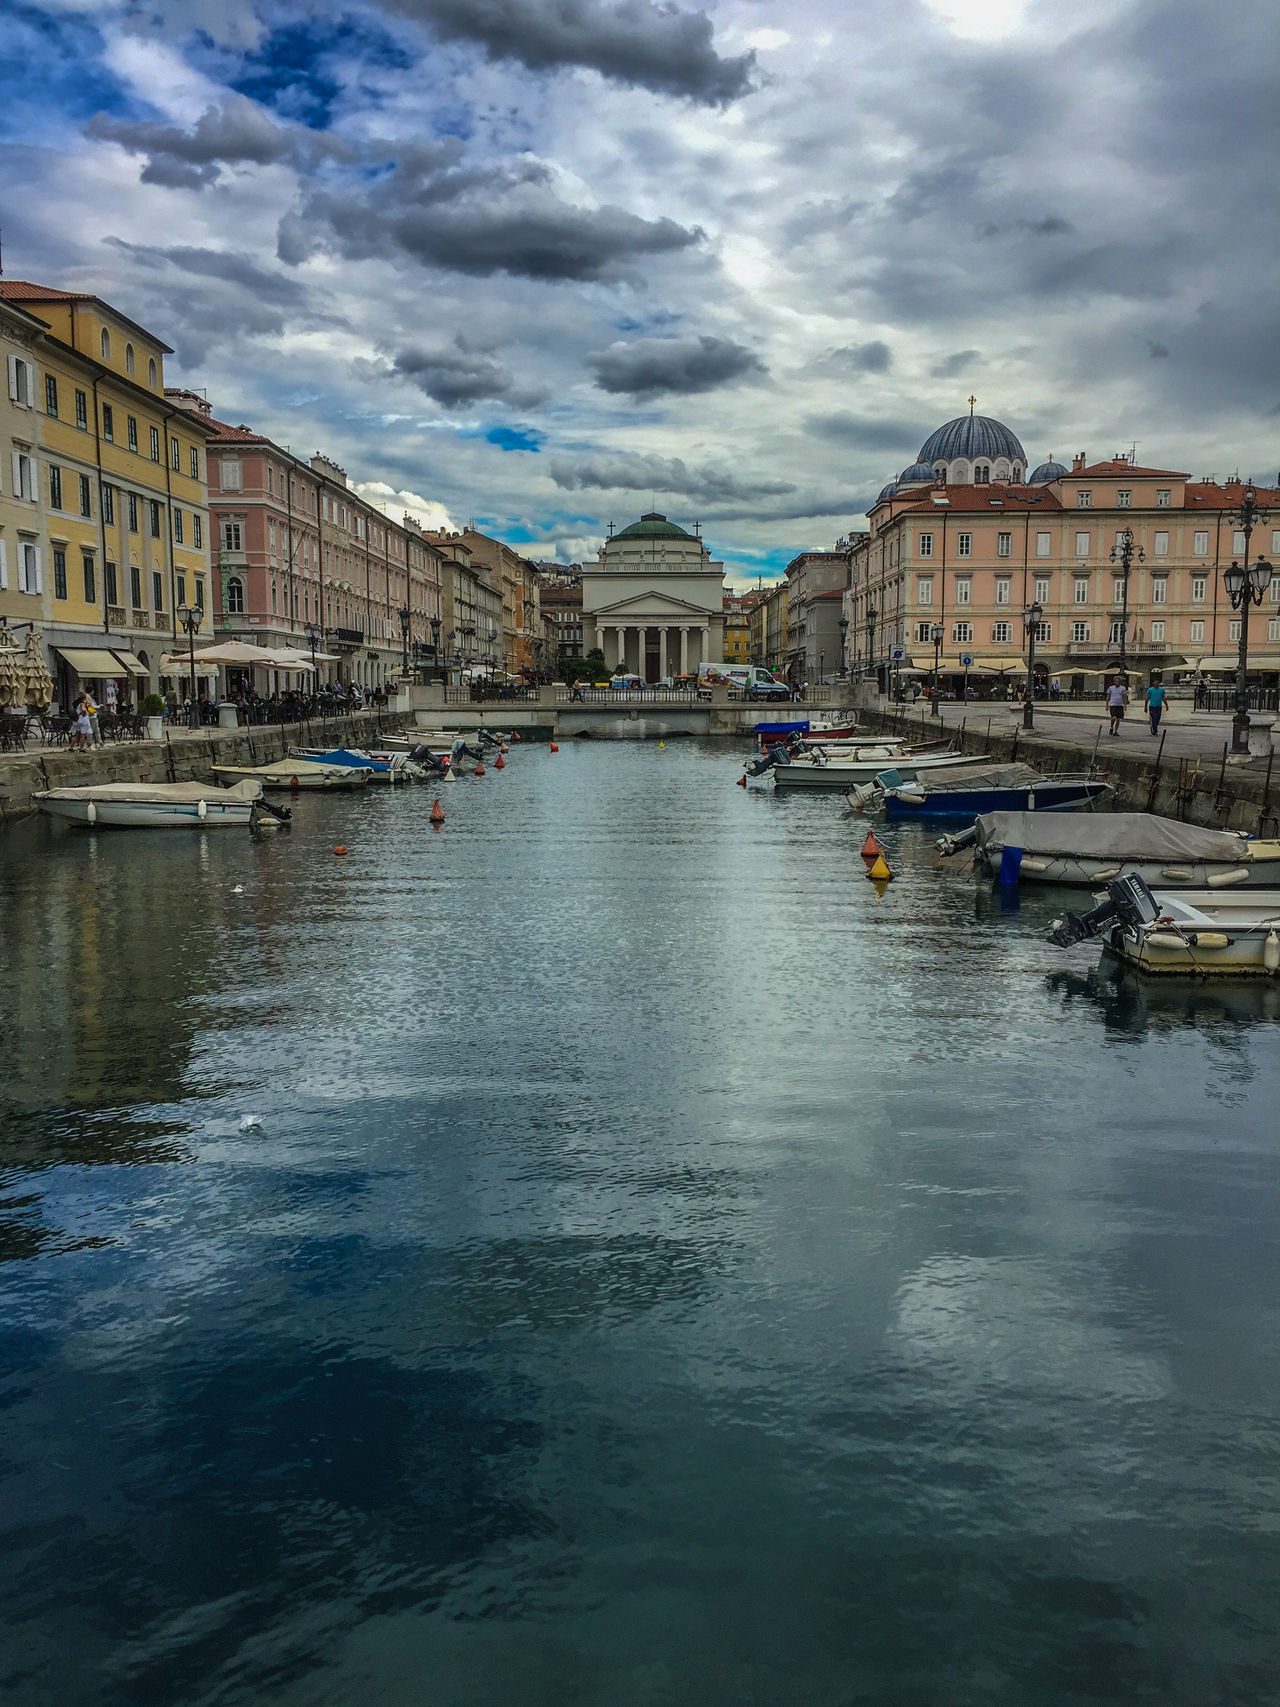 Architecture City Cloud - Sky Grand Canal Italy Outdoors Reflection Sky Stormy Travel Destinations Trieste Trieste Grand Canal Water